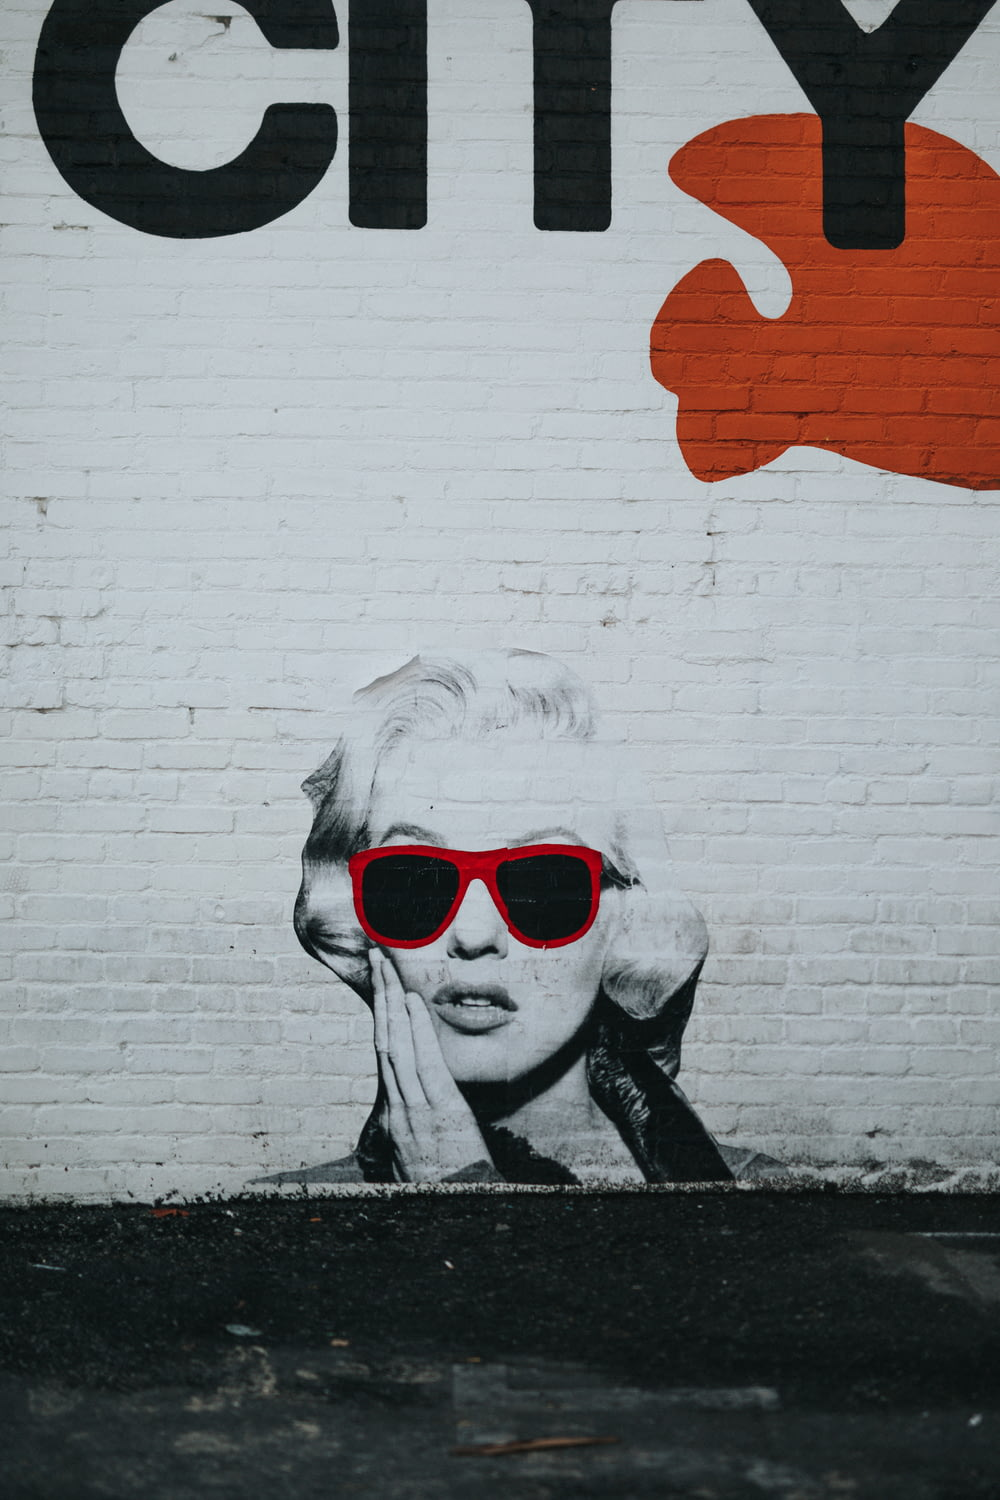 Marilyn Monroe graffiti wall art